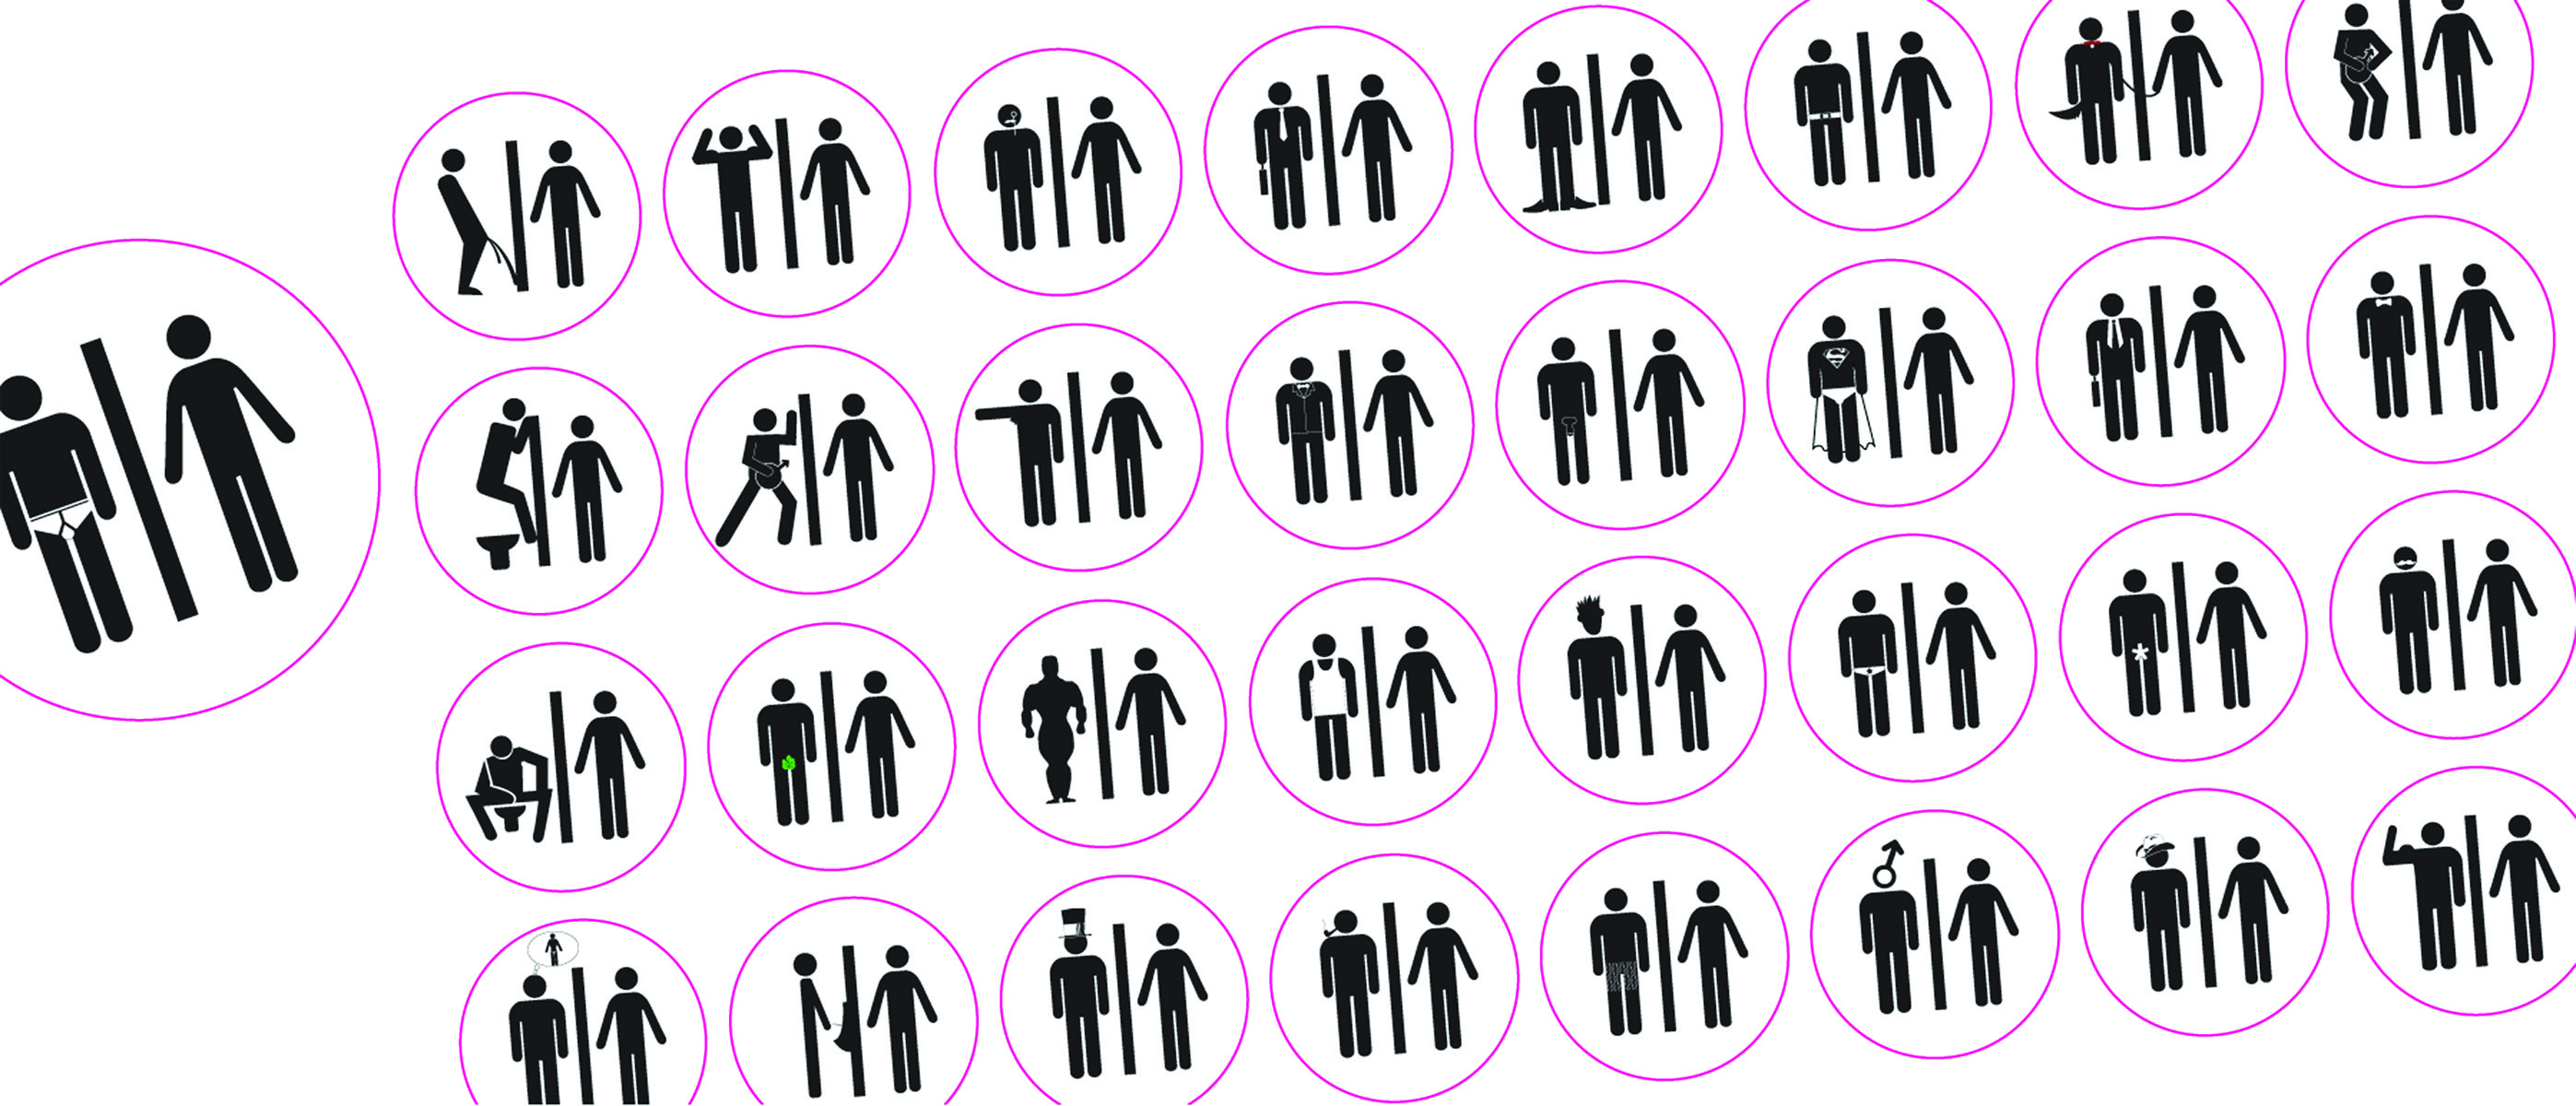 Figure 14.: 'Gender Agenda 1': Challenging Discriminatory Conventions. This Loyola Marymount University undergraduate social design project was intended to challenge students to graphically differentiate between genders without using the stylized reference of a skirt. It became an experiment in how gender role-reversal could be effectively depicted in restroom signage. Source: Dobson, T. 2016.